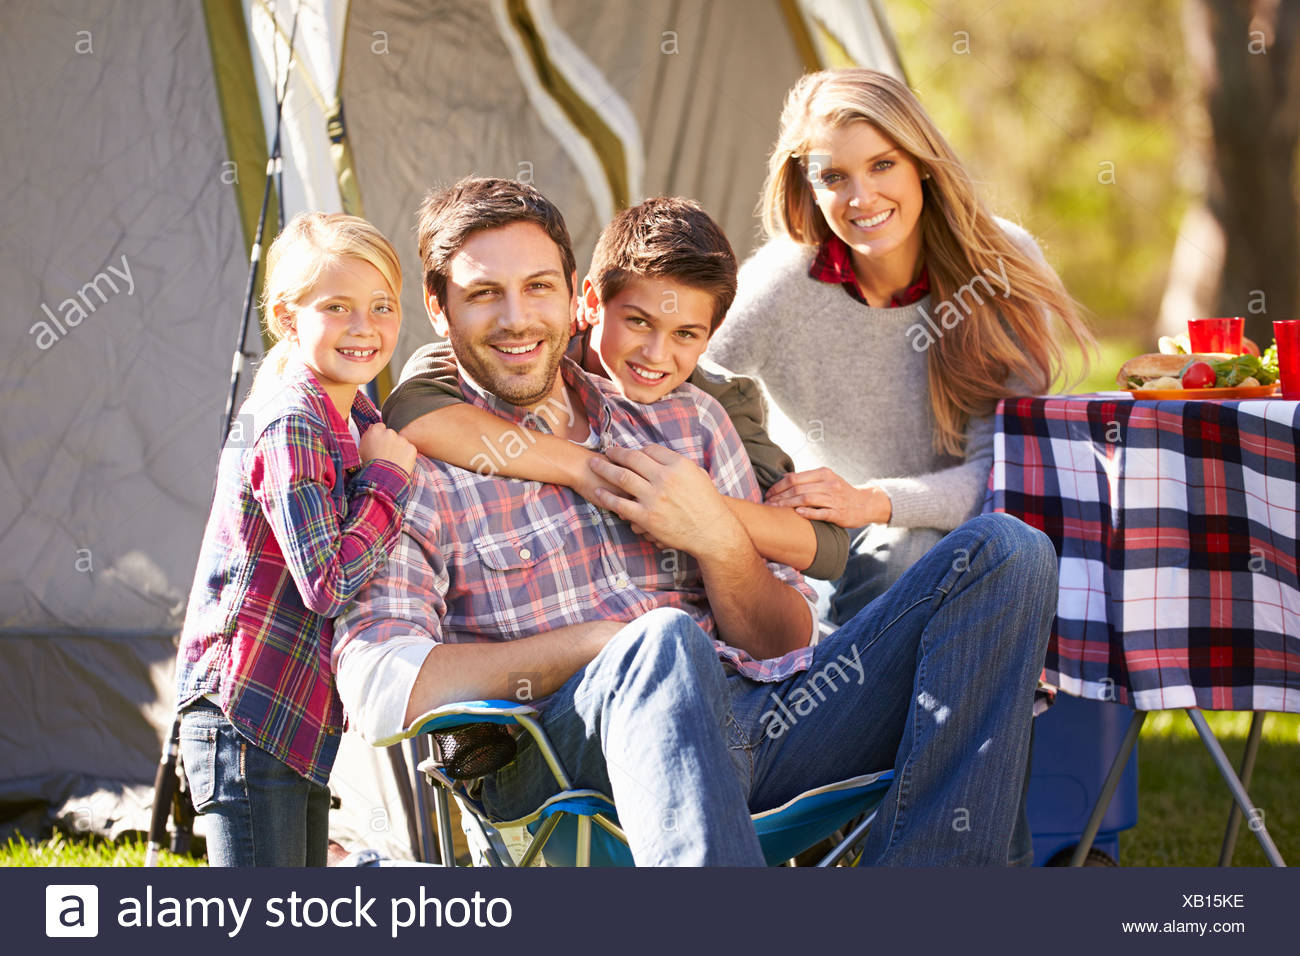 Family Enjoying Camping Holiday In Countryside - Stock Image